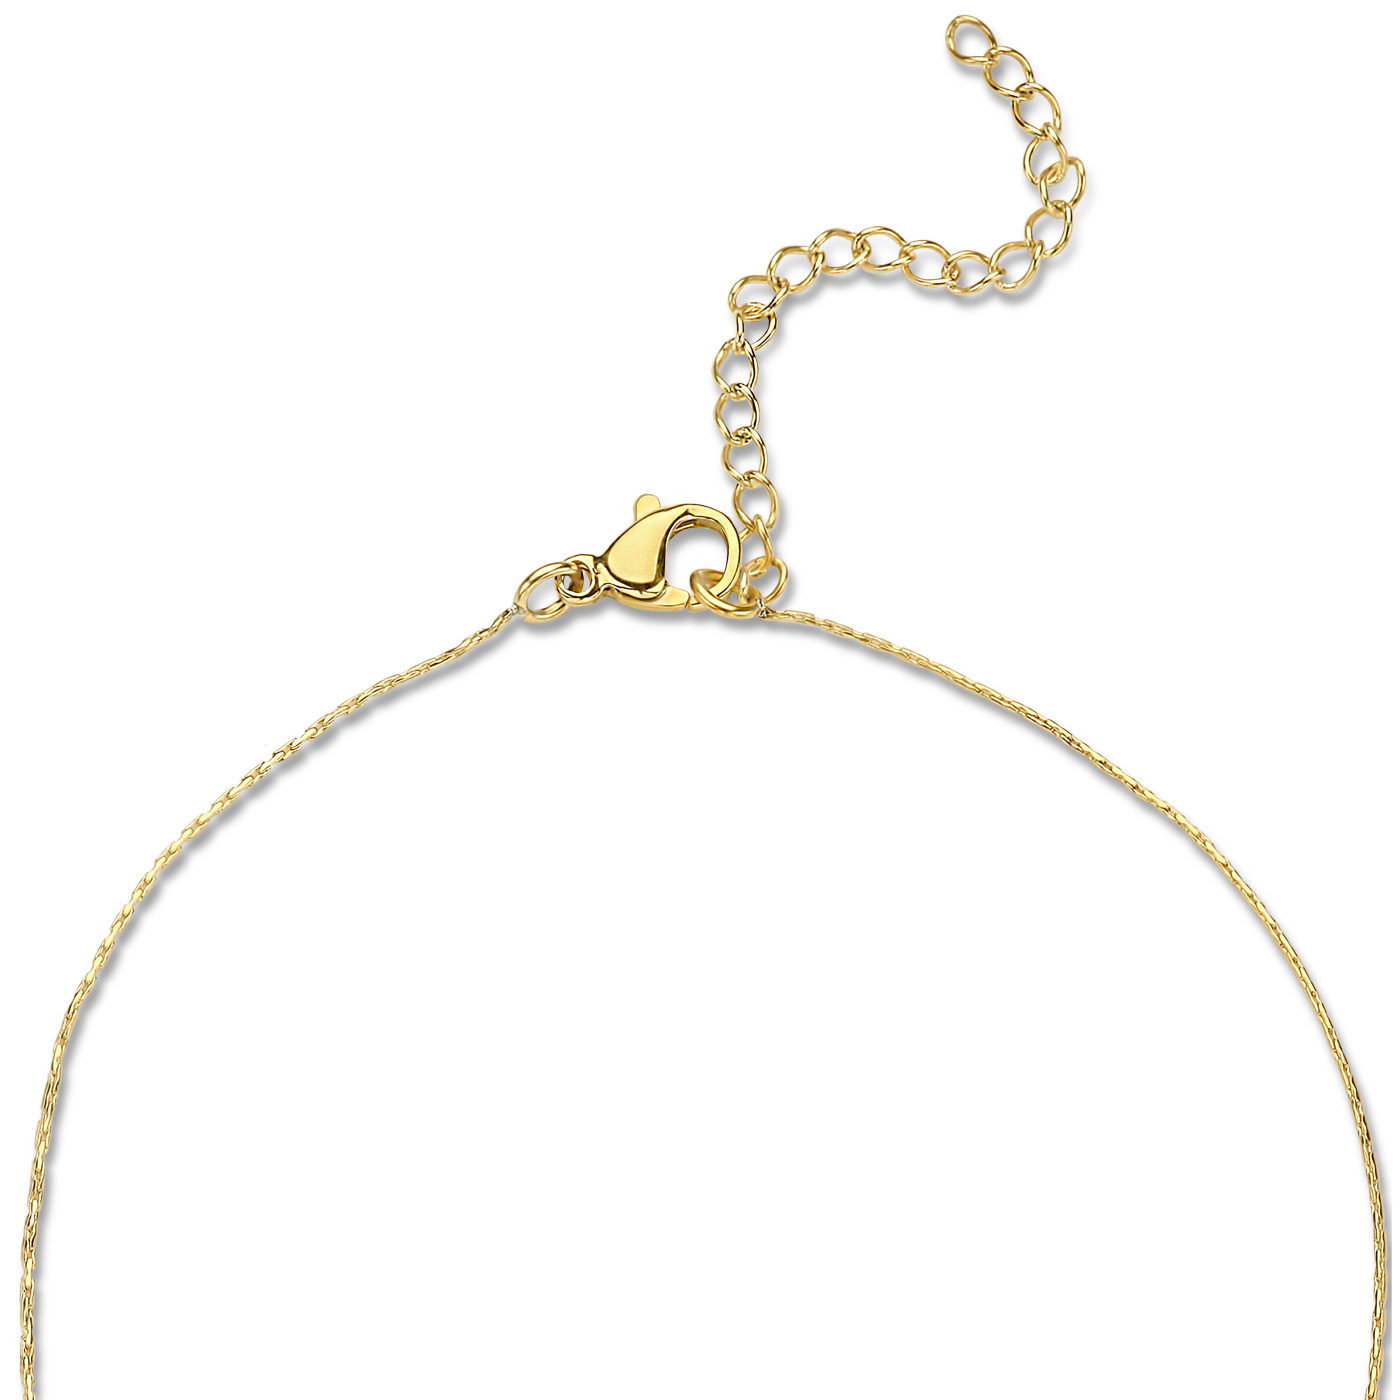 May Sparkle Happiness Rosemary gold colored necklace